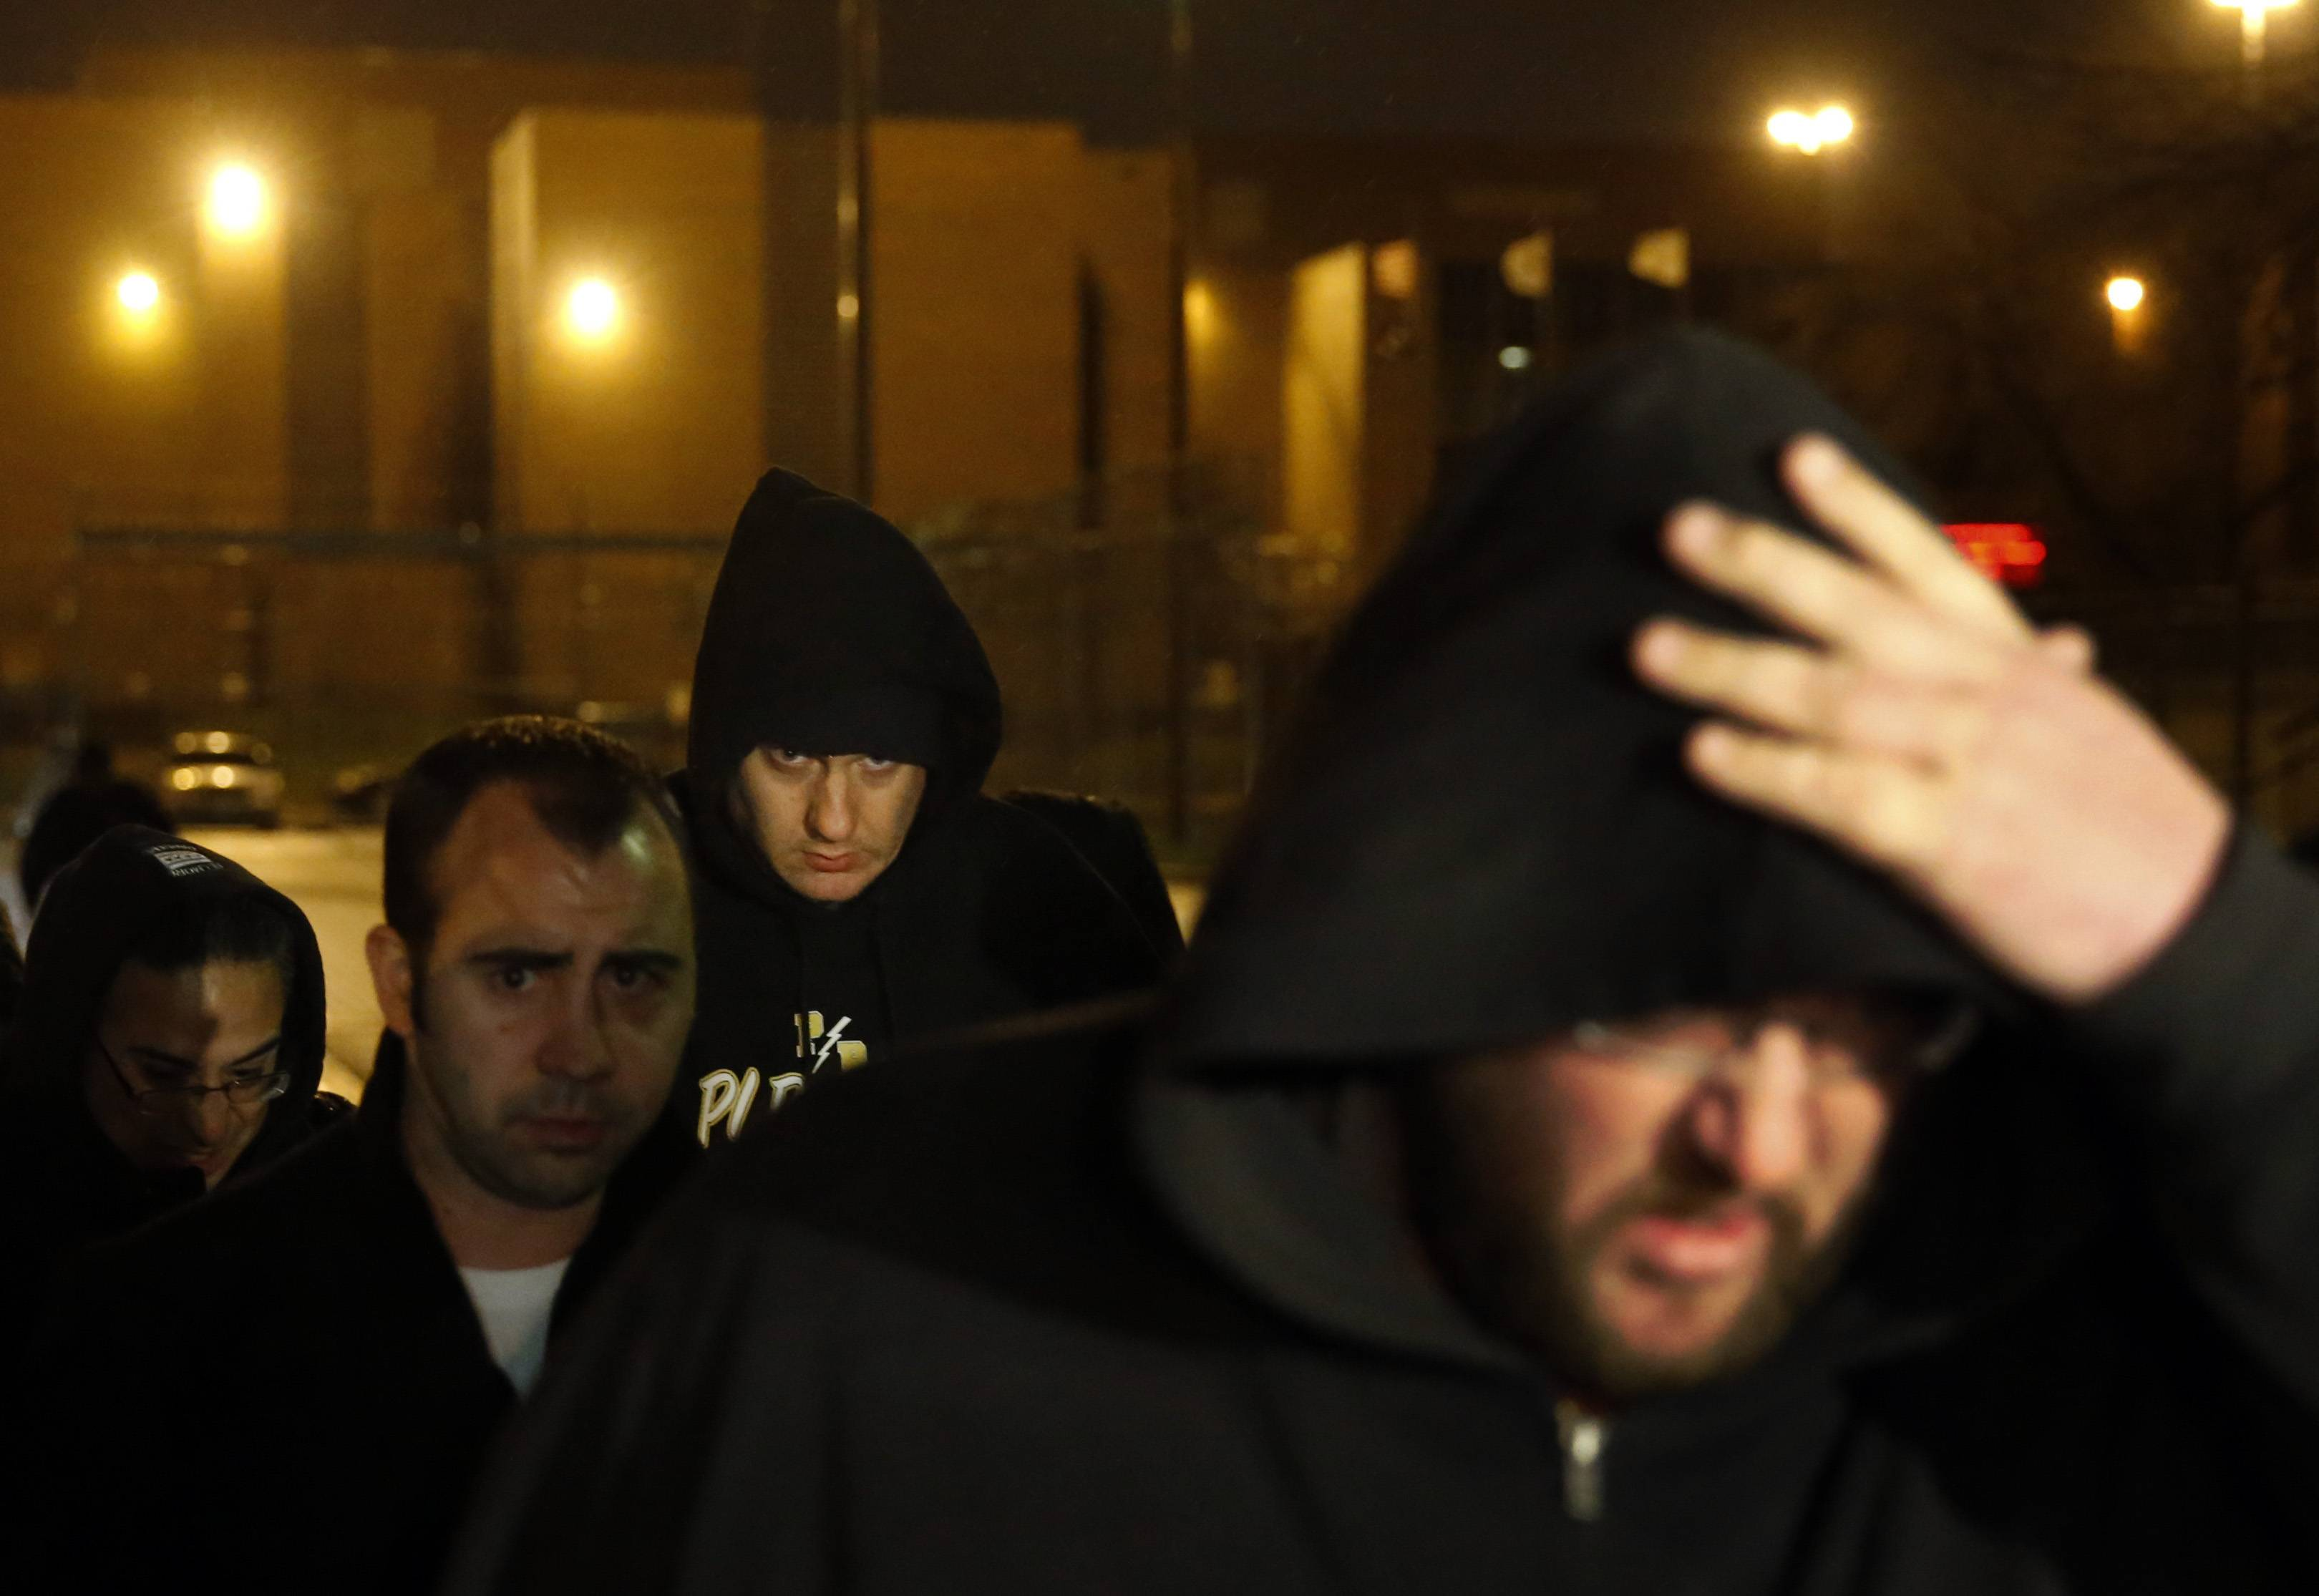 Chicago Police Officer Jason Van Dyke, back middle, leaves the Cook County Jail after posting bond on Monday, Nov. 30, 2015, in Chicago. Van Dyke has been locked up since Nov. 24, when prosecutors charged him with first-degree murder in the shooting death of 17-year-old Laquan McDonald.